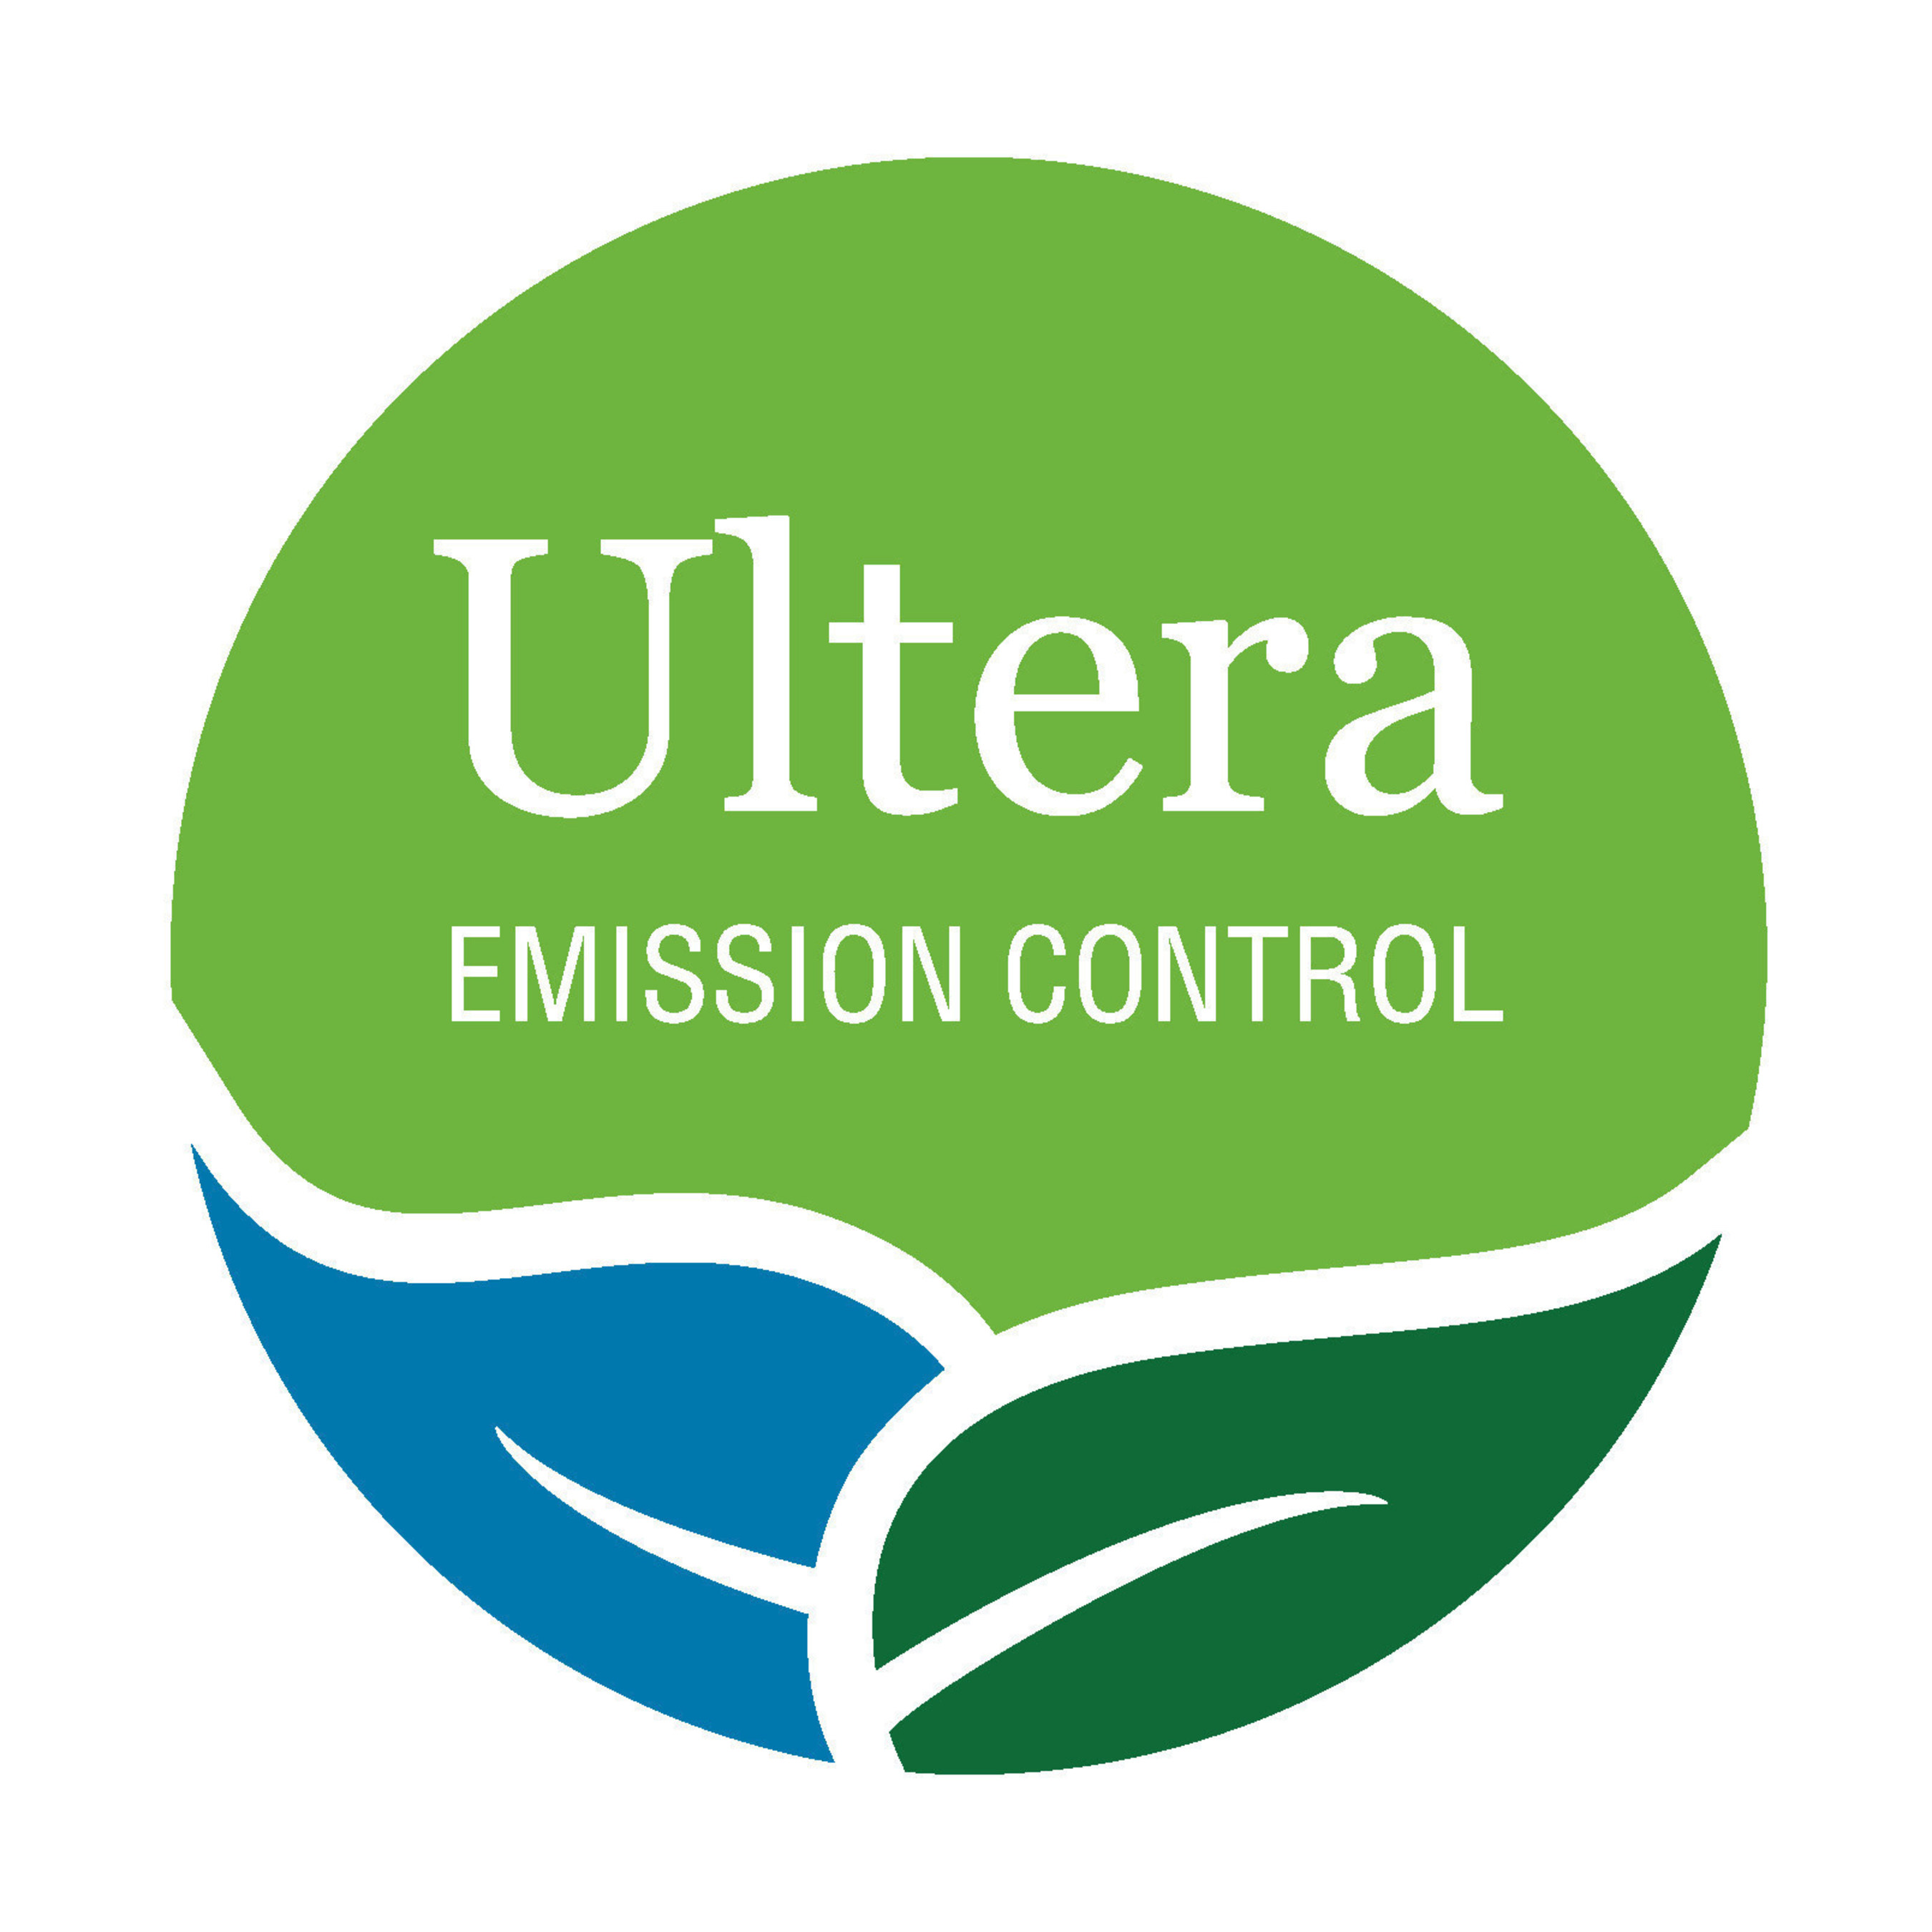 Auto Emissions Control Company ULTRATEK Valued at $58.2 million in Third Round Funding